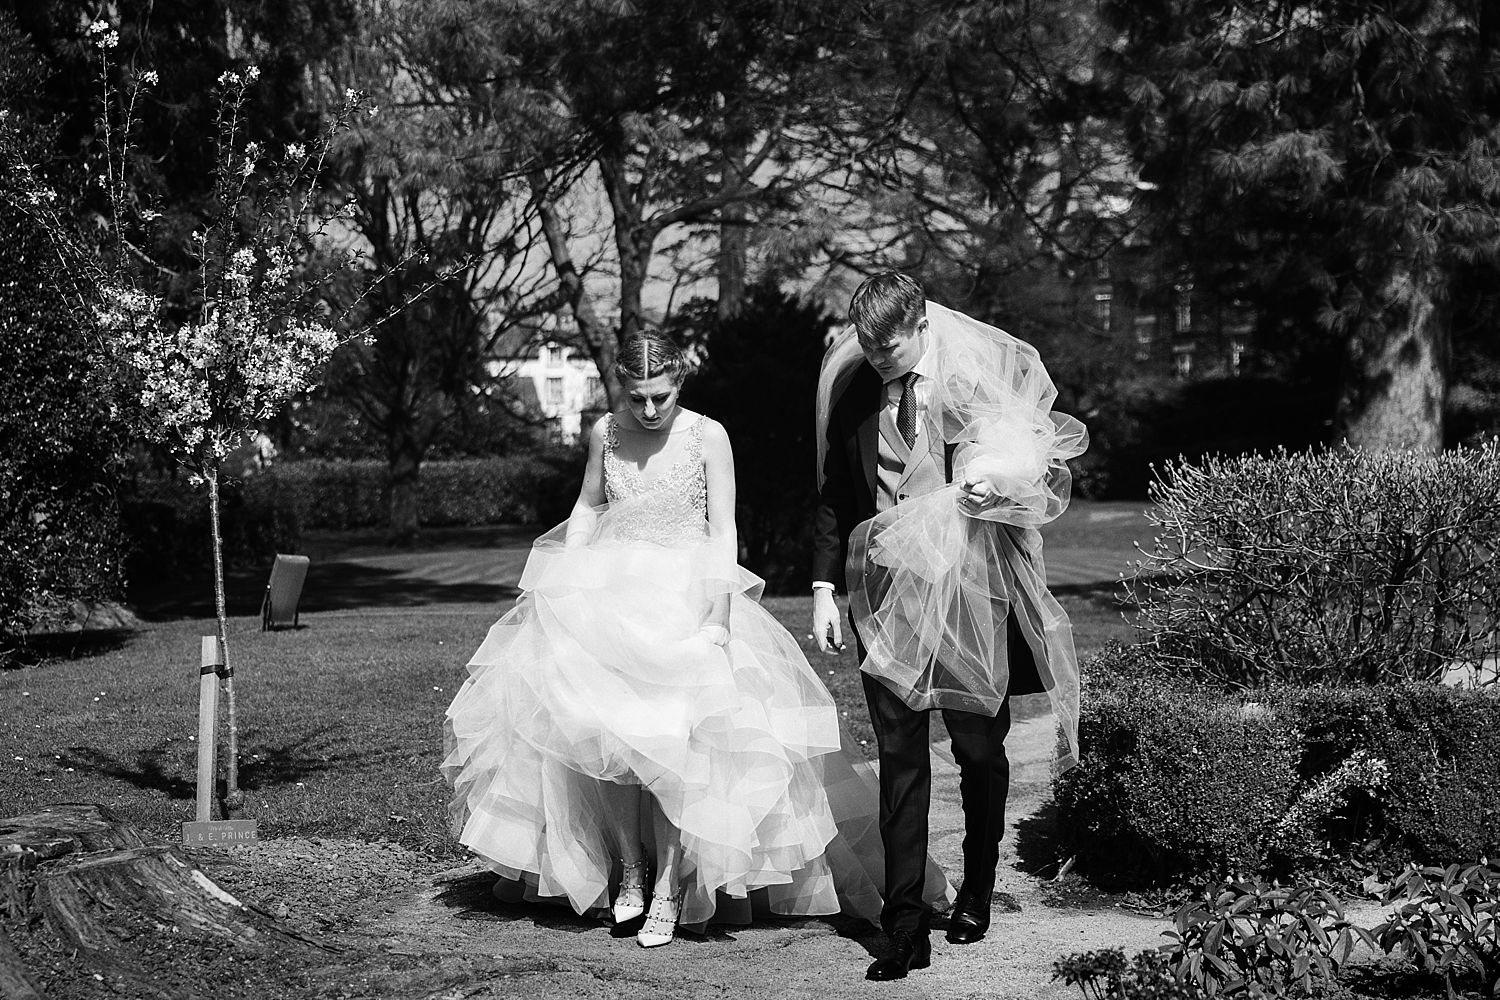 Bride and groom walking together, grrom holding veil in the grounds of the Belsield Hotel in Bowness on Windermere